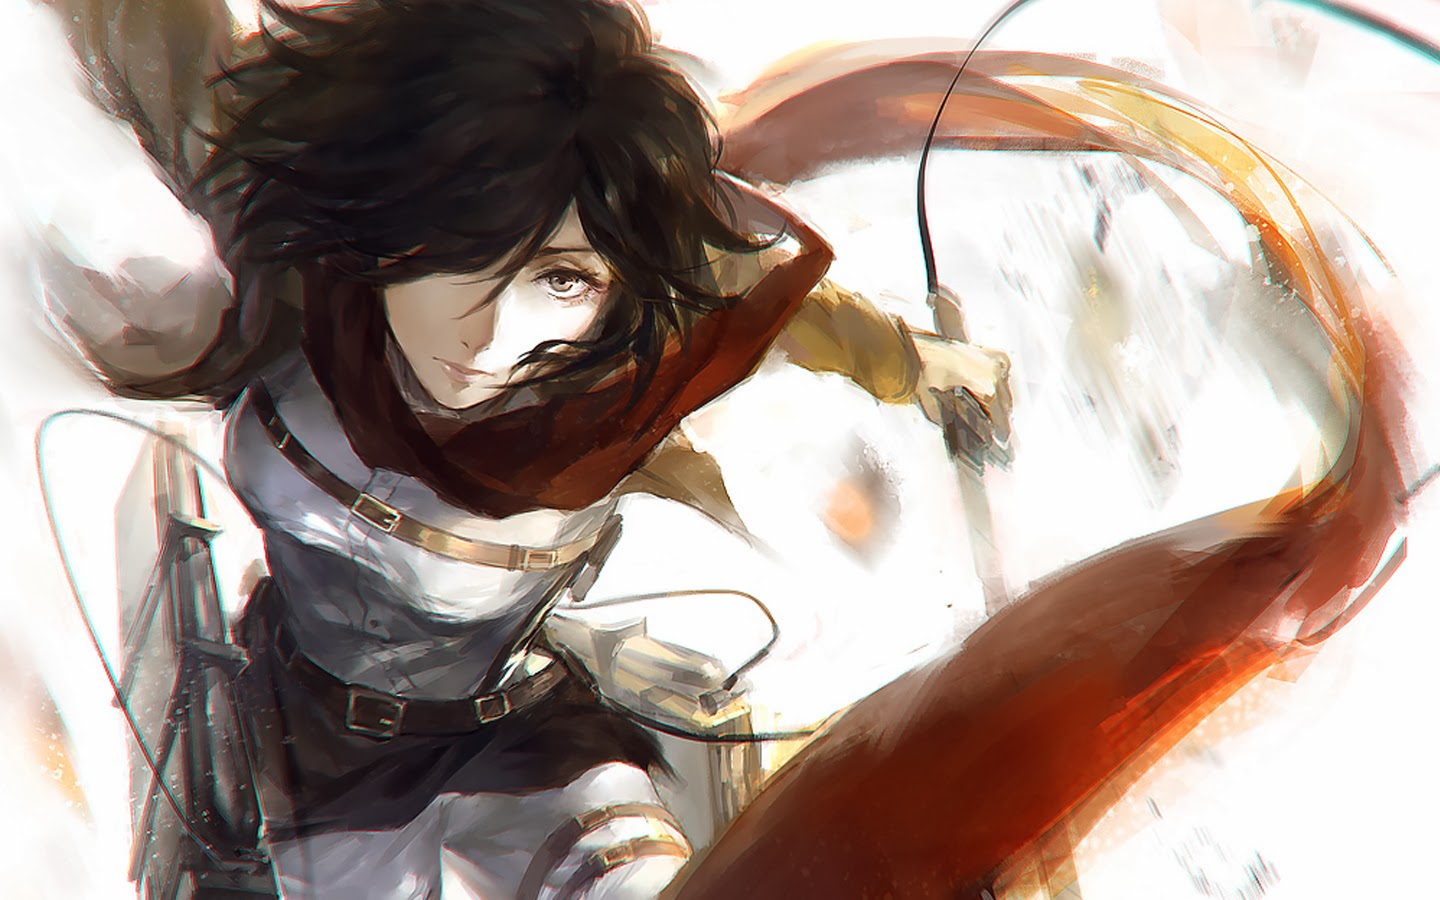 49 Attack On Titan Mikasa Wallpaper On Wallpapersafari